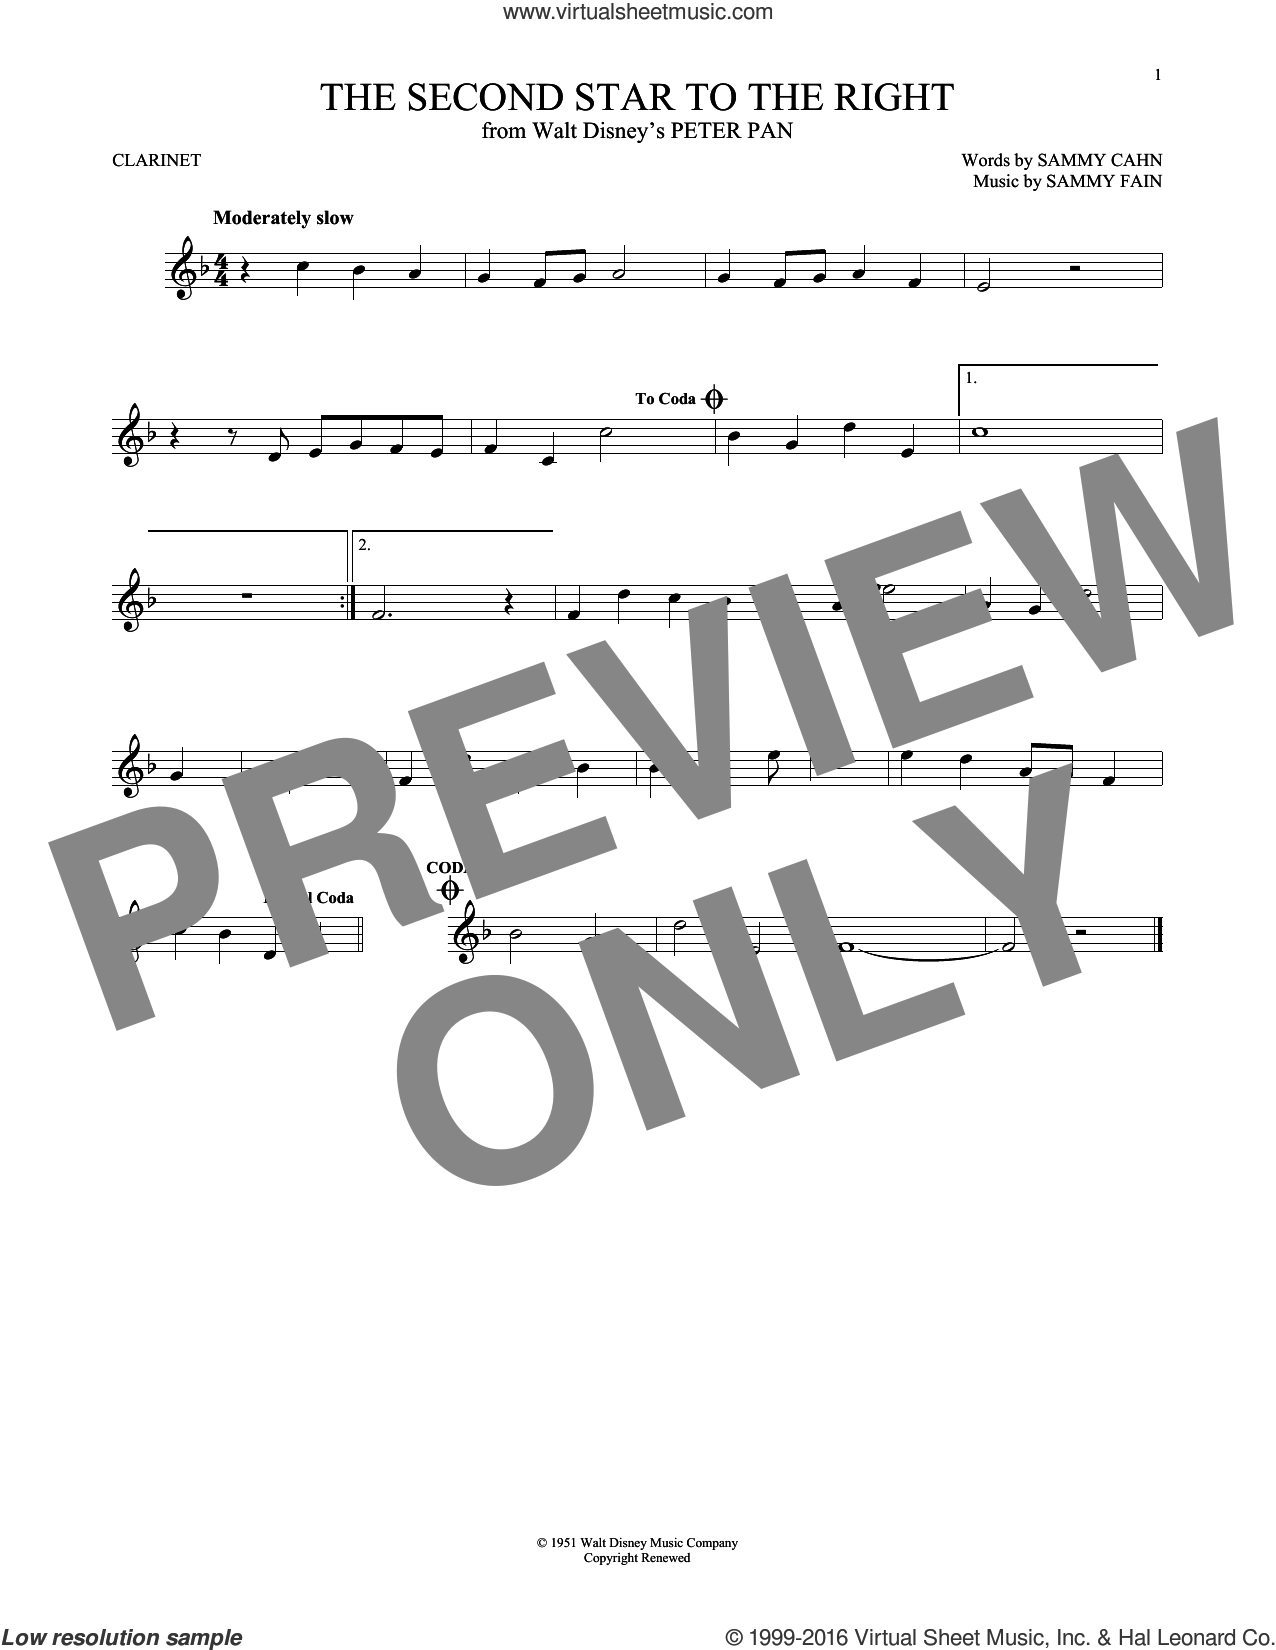 The Second Star To The Right sheet music for clarinet solo by Sammy Cahn and Sammy Fain, classical score, intermediate skill level